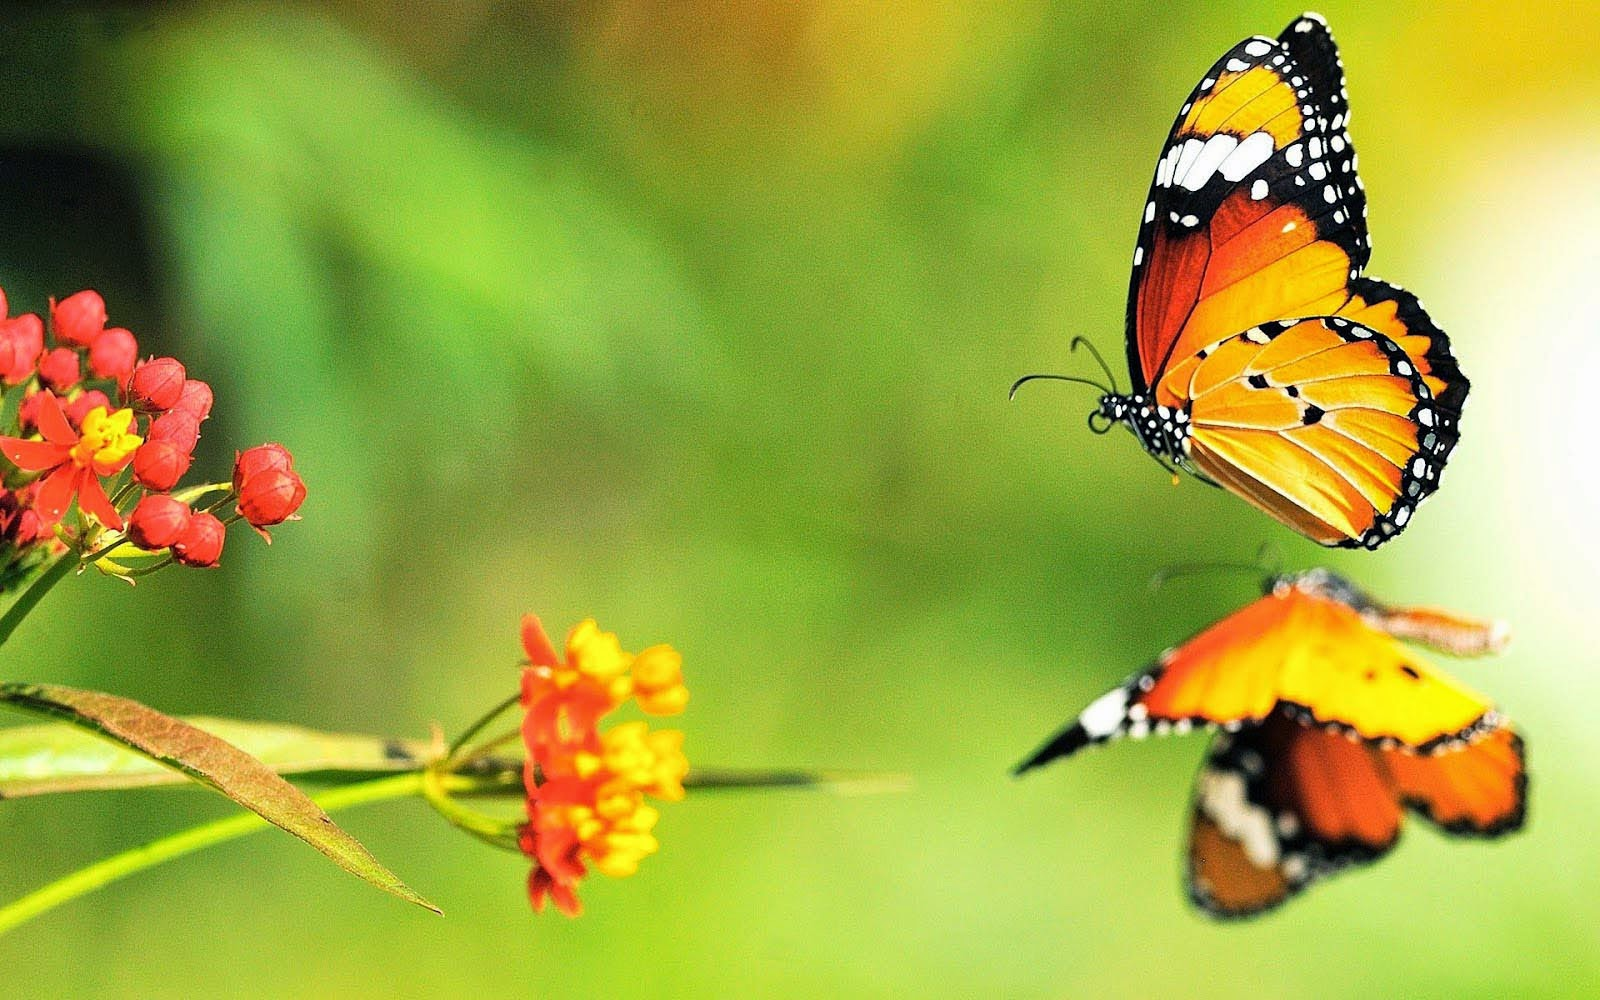 butterfly pictures, butterfly wallpaper, desktop backgrounds, desktop wallpapers, hd desktop backgrounds